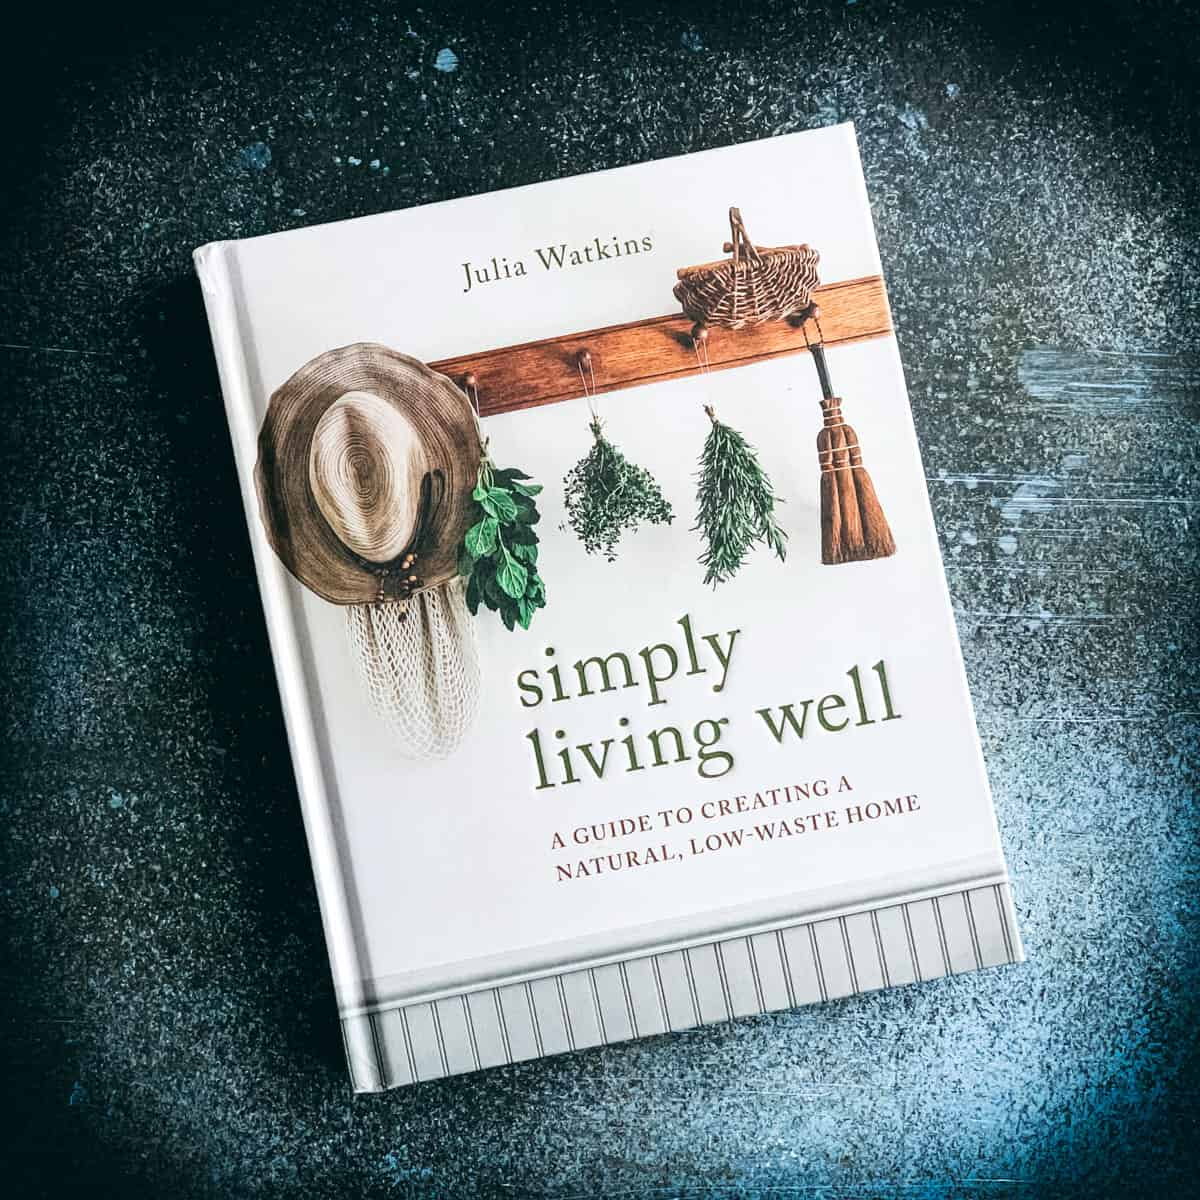 simply living well book by julia watkins on a dark blue background